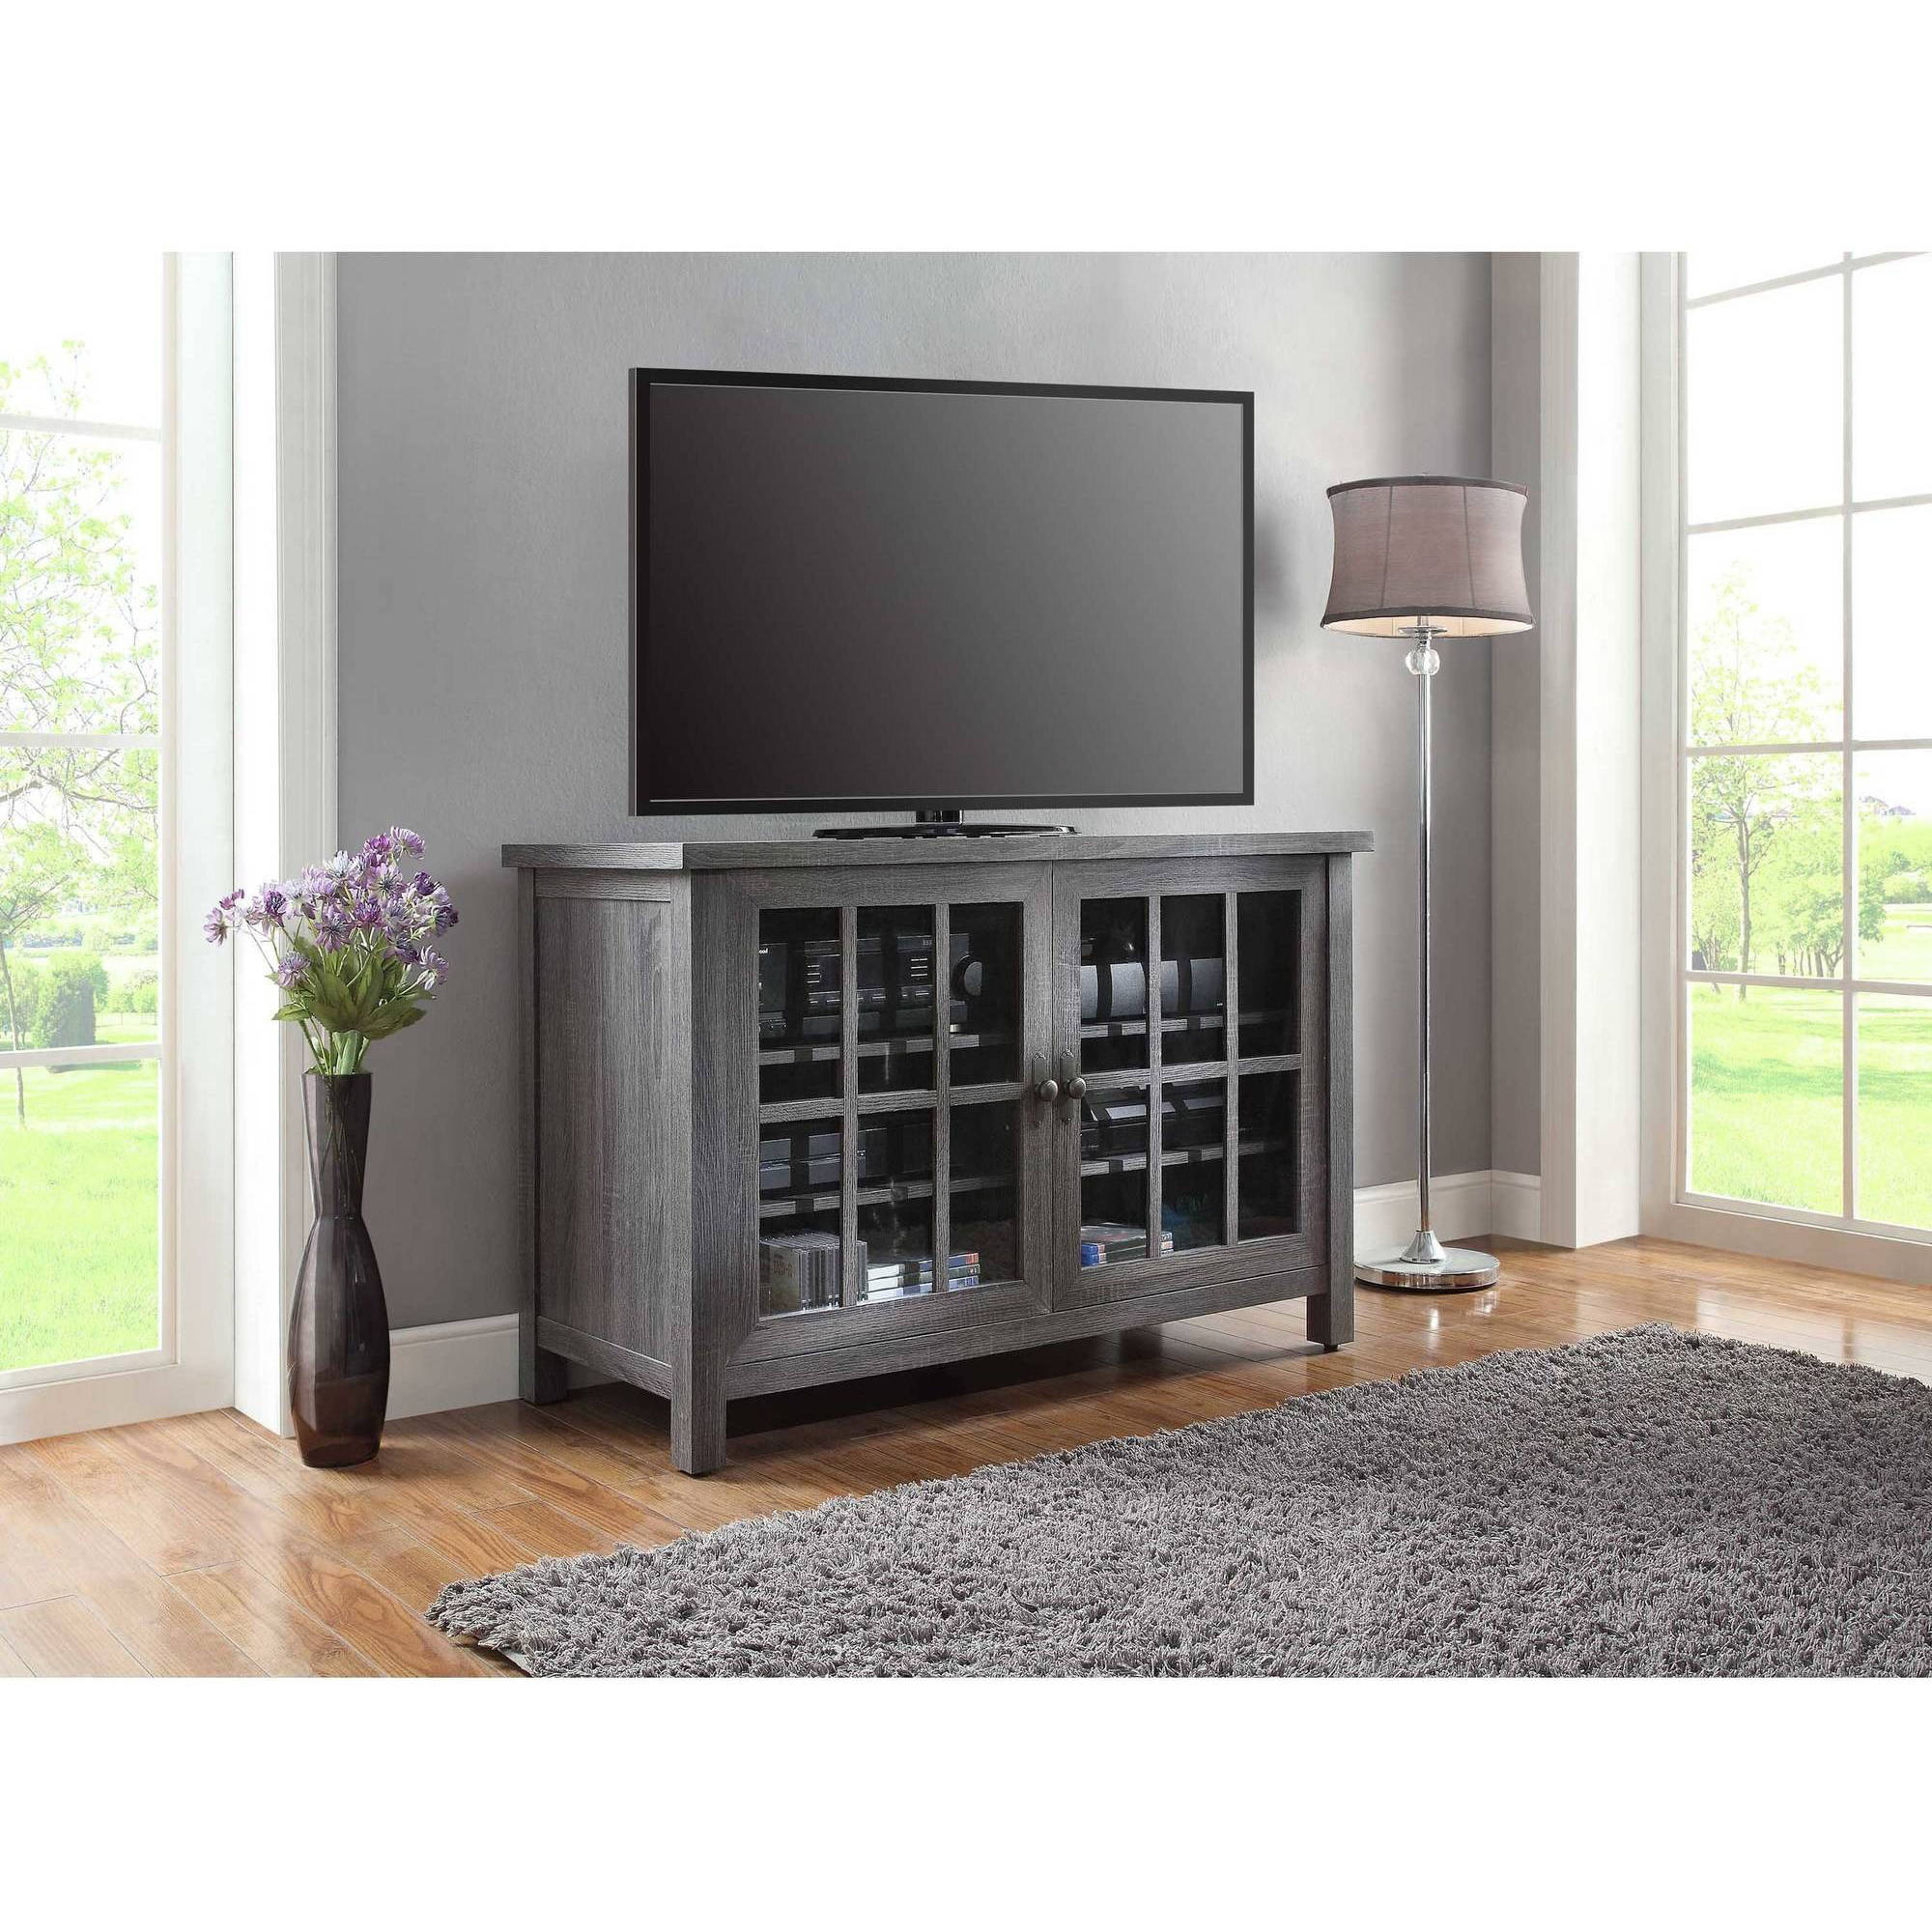 Better Homes And Gardens Oxford Square Tv Console For Tvs Up To 55 Intended For Oxford 70 Inch Tv Stands (View 2 of 30)